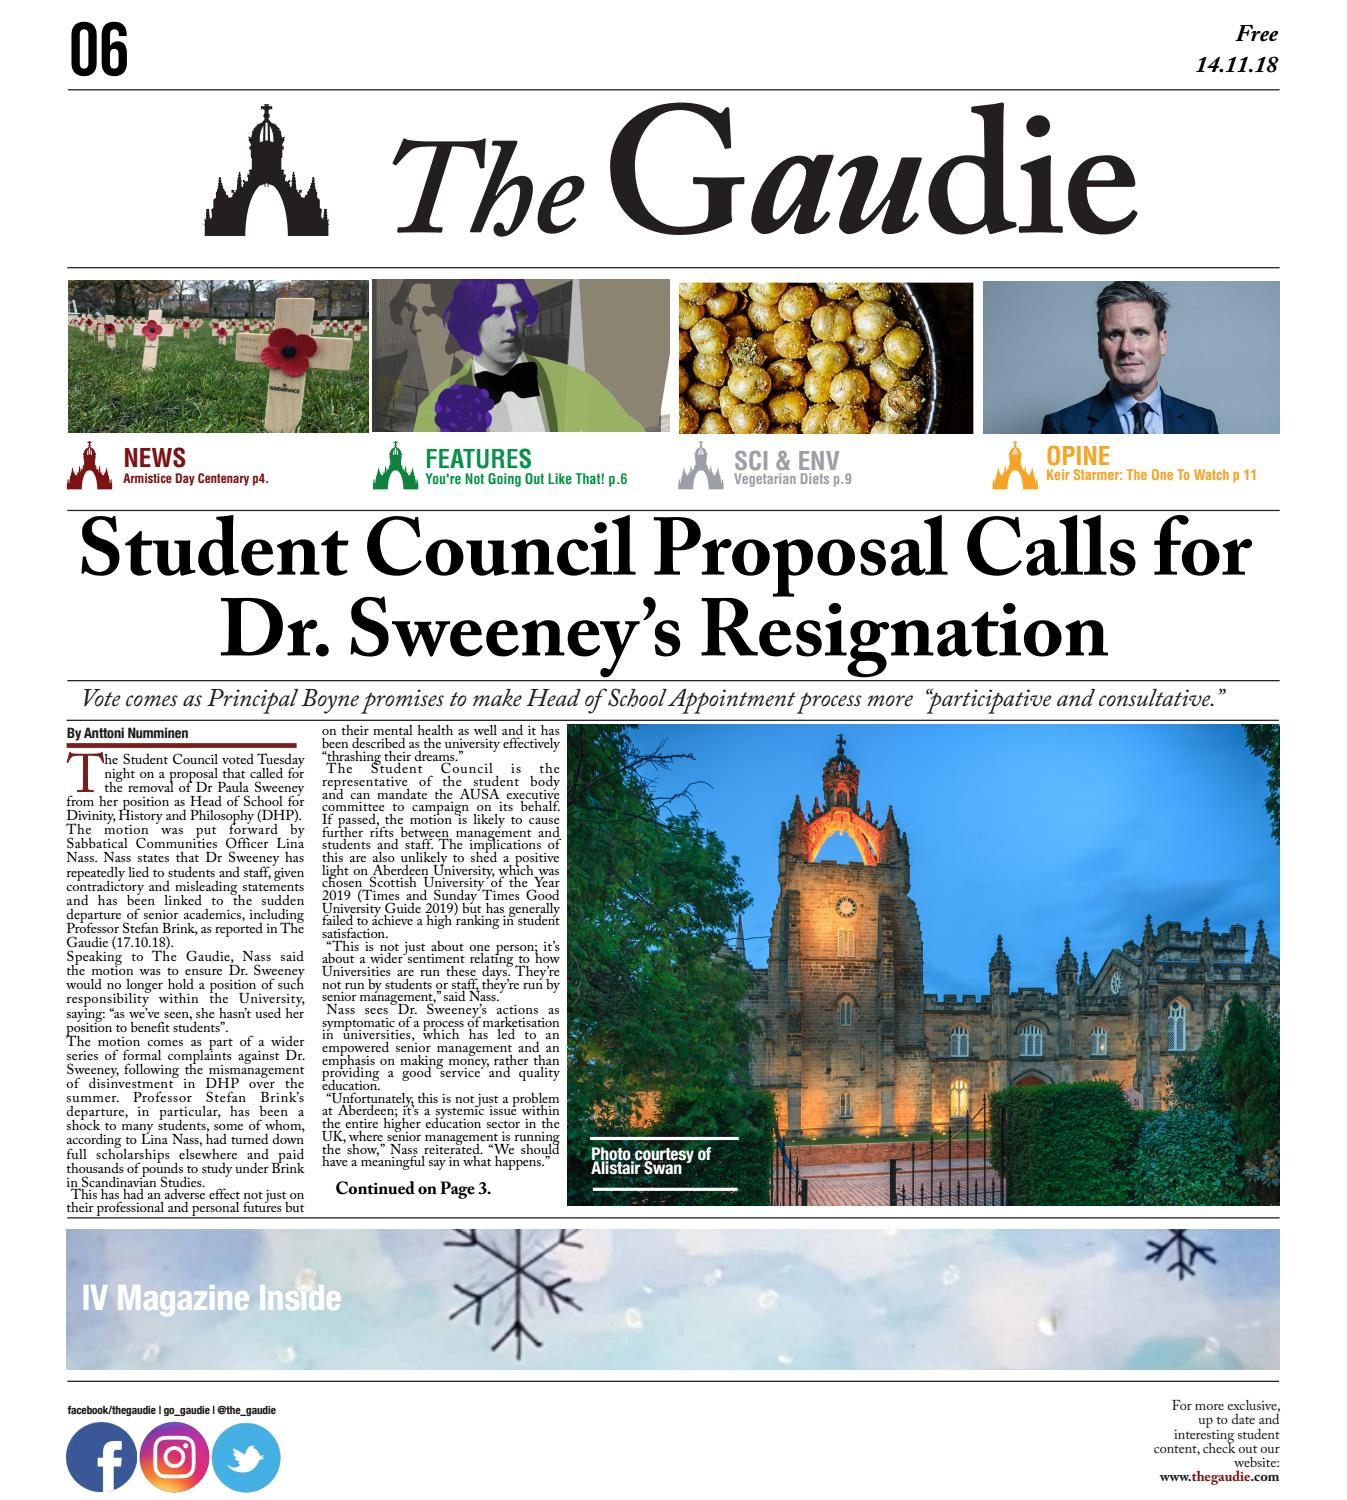 bfd329a307d The Gaudie 14.11.18 by The Gaudie - issuu